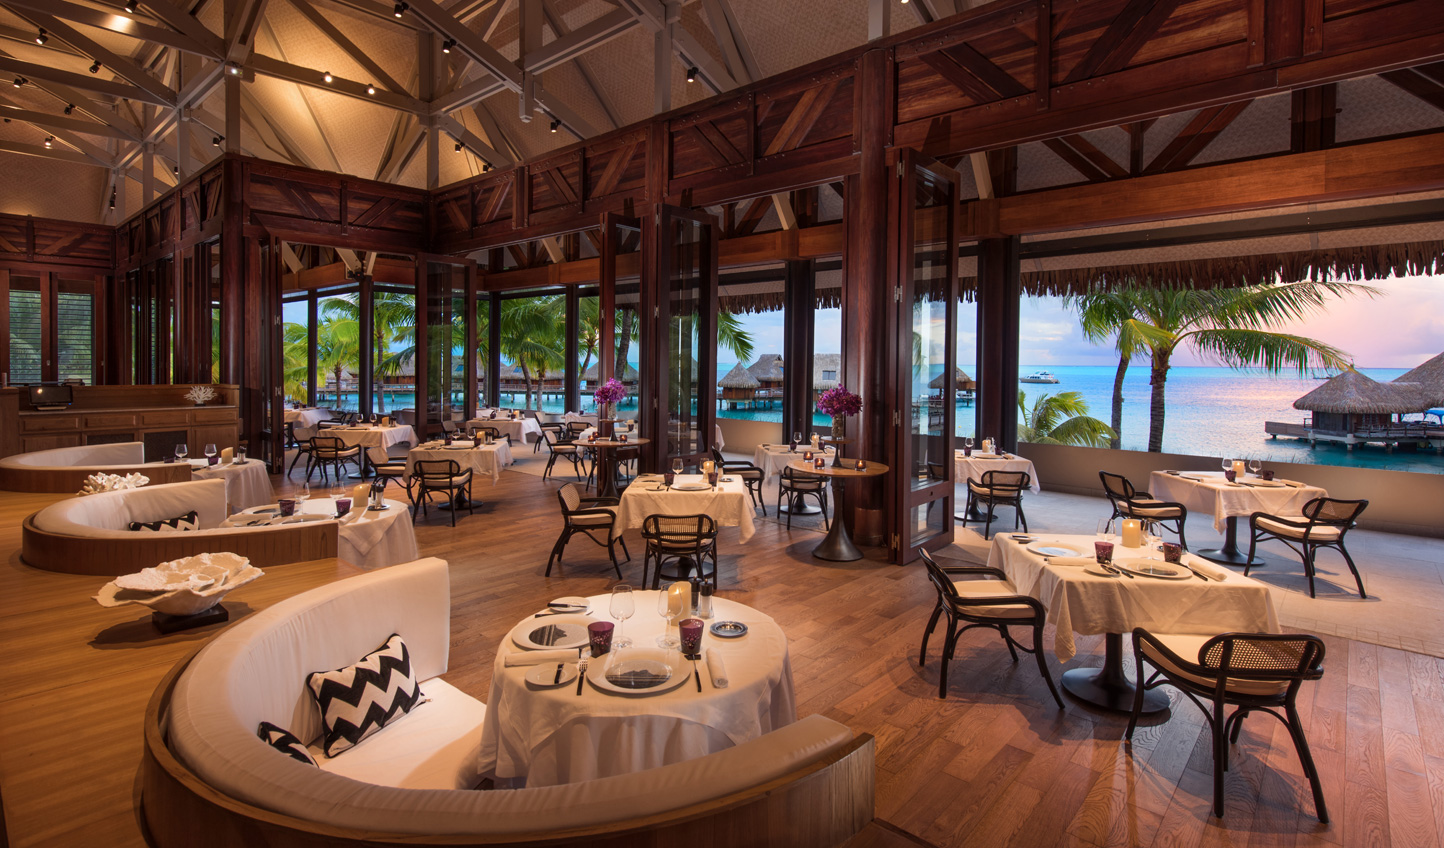 Taste the islands' French influence at Iriatai